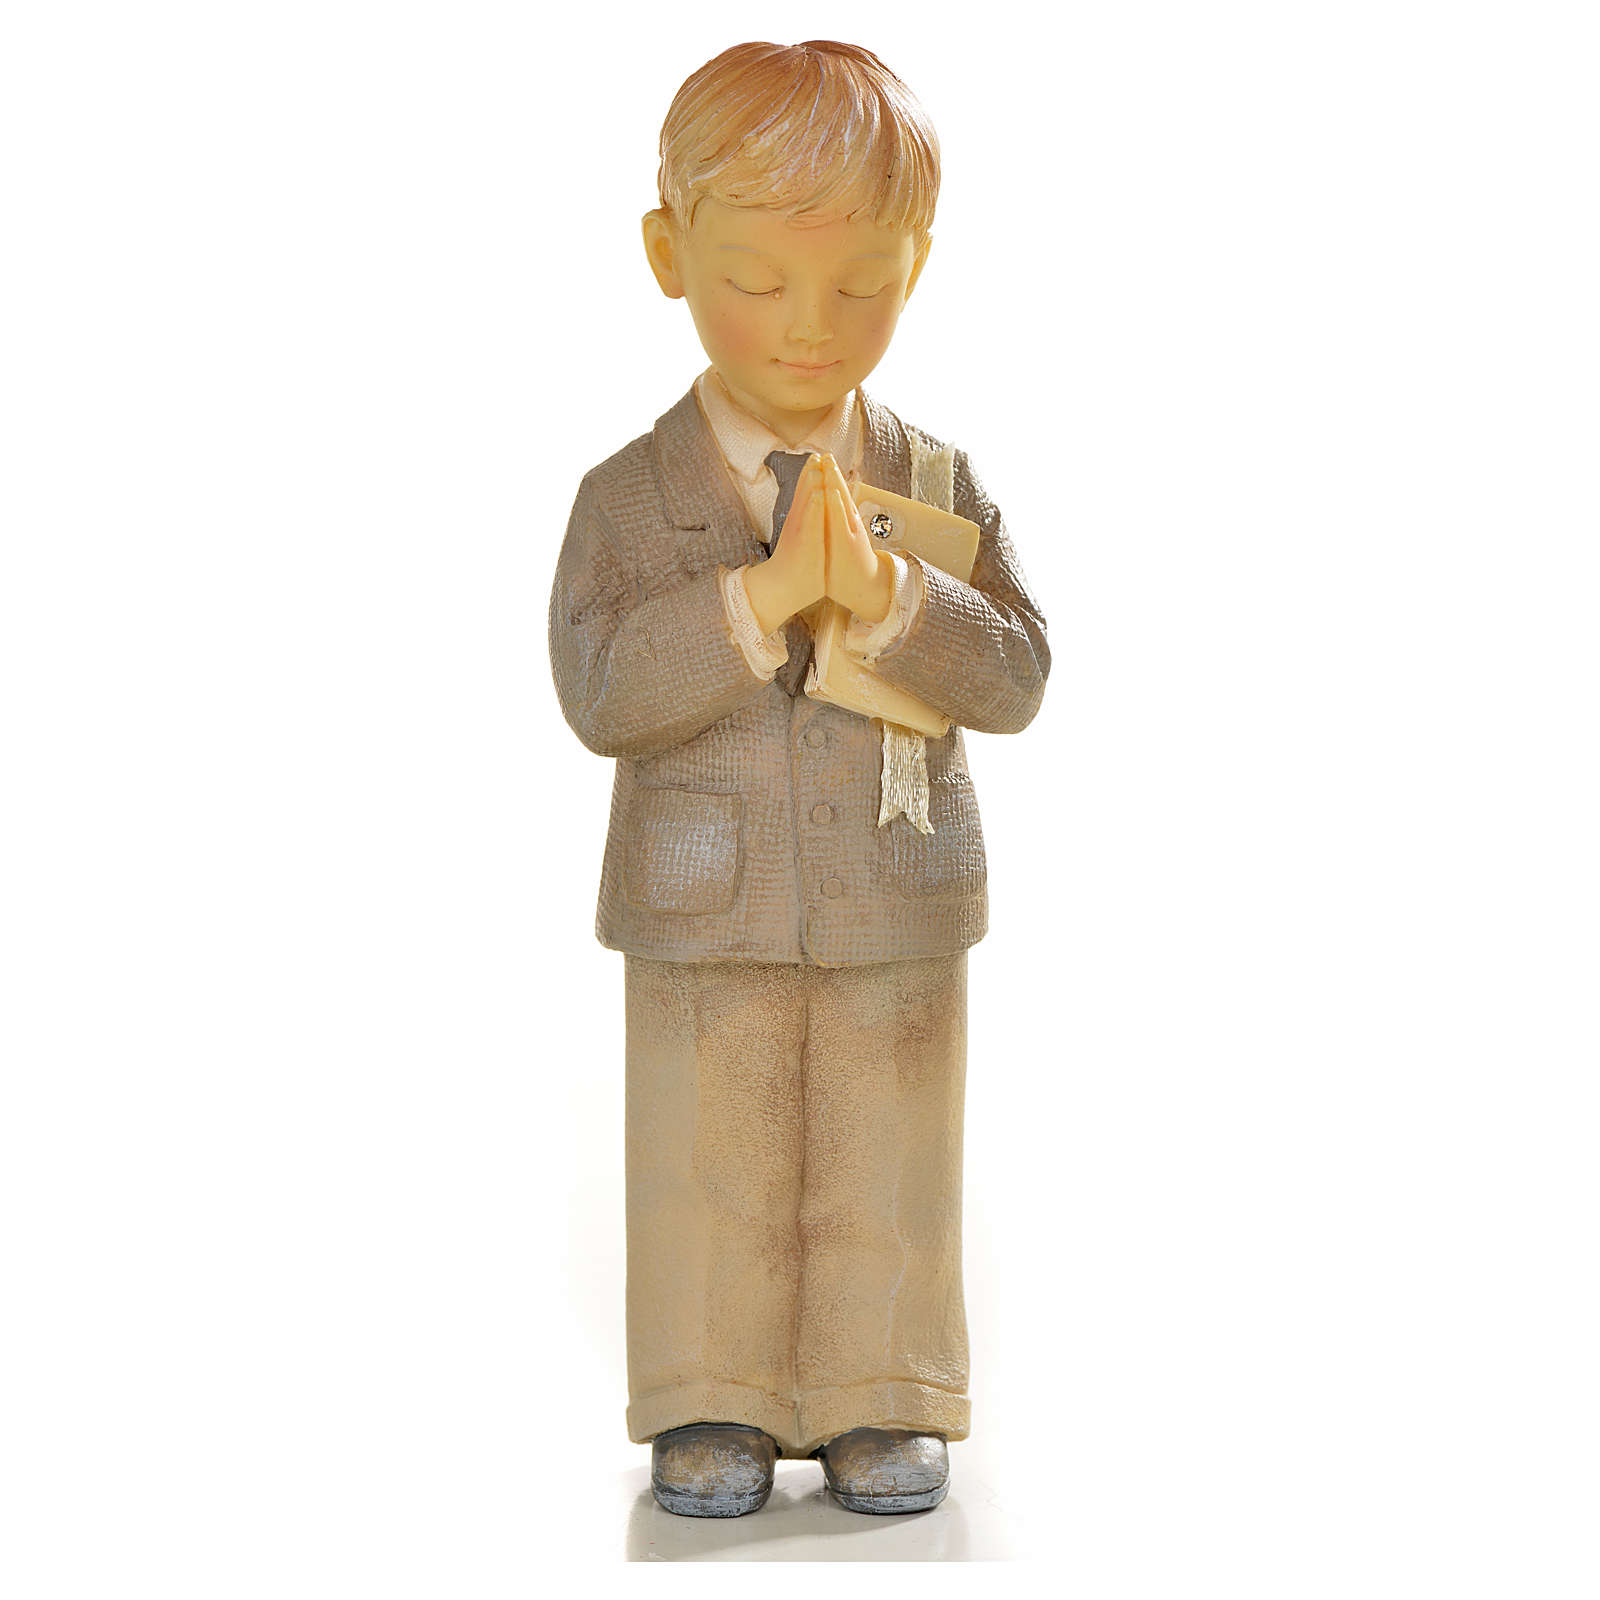 Praying child in resin 3